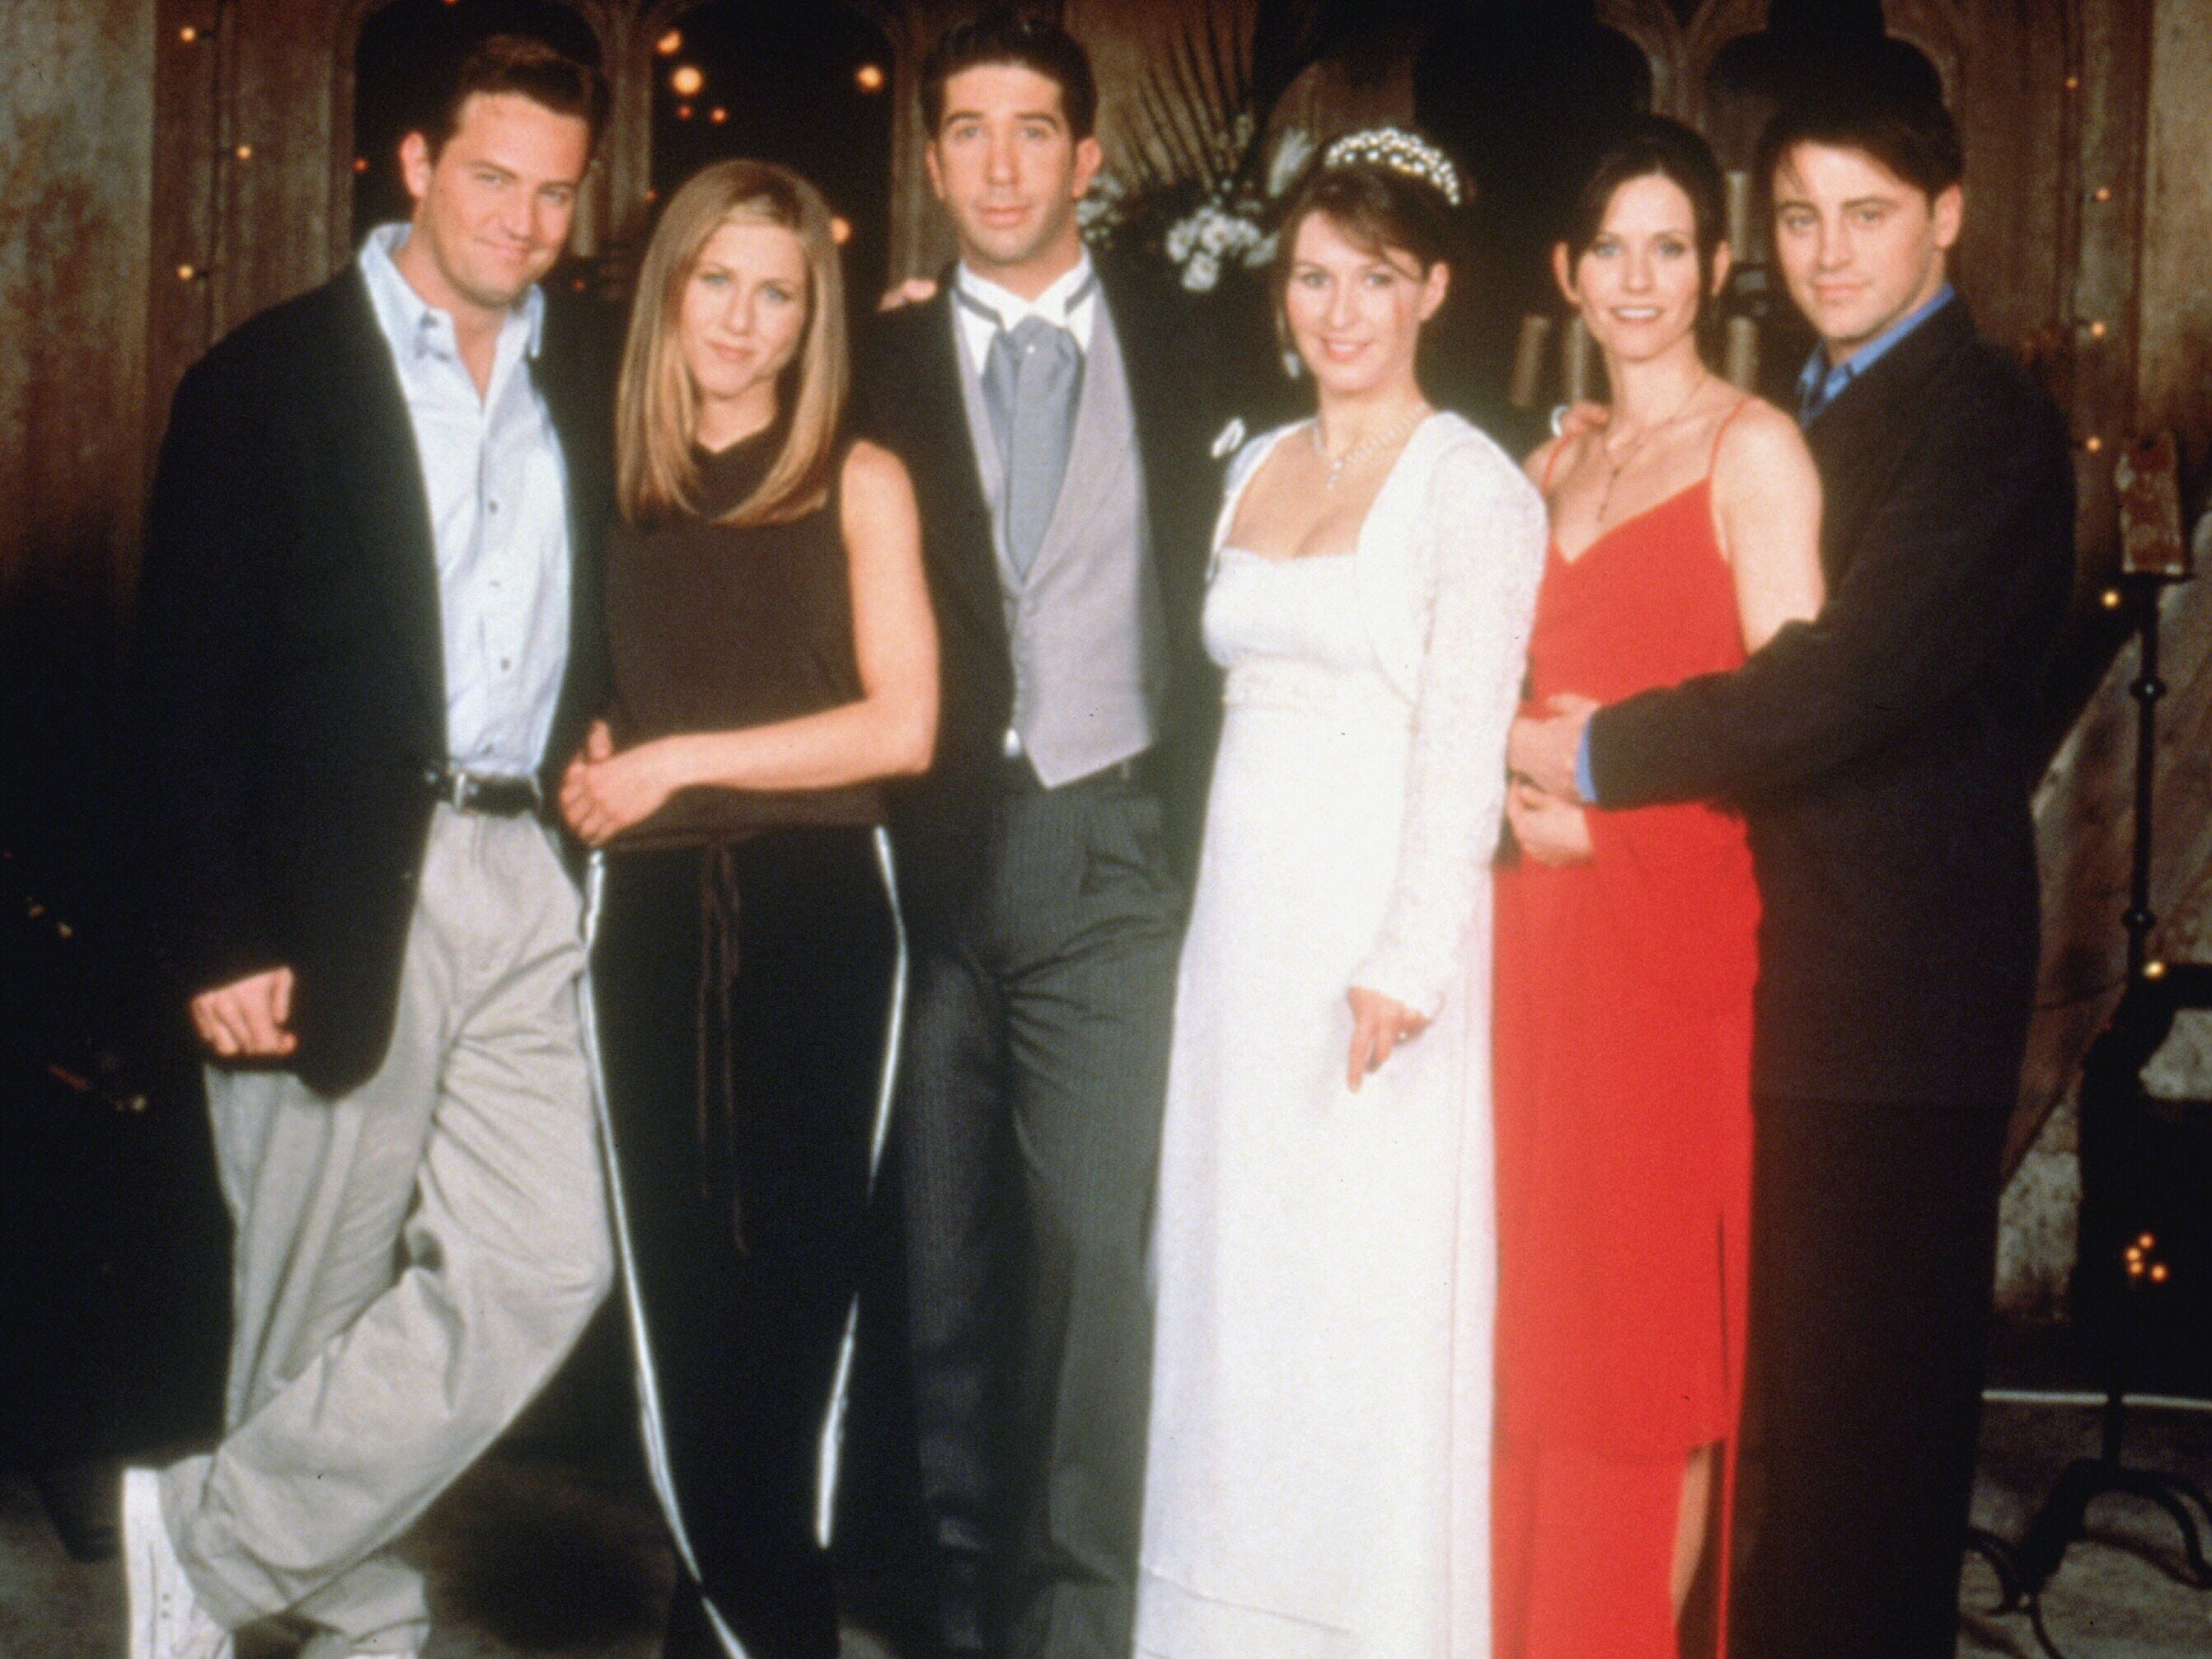 """1998's pivotal Season 4 finale of """"Friends,"""" shook up the Ross-Rachel dynamic once again when he accidentally said """"I take thee, Rachel"""" at his wedding to Emily (Helen Baxendale, center). In order to to save that relationship, Ross (David Schwimmer) agreed to her demand that he cut Rachel out of his life. That didn't last long."""